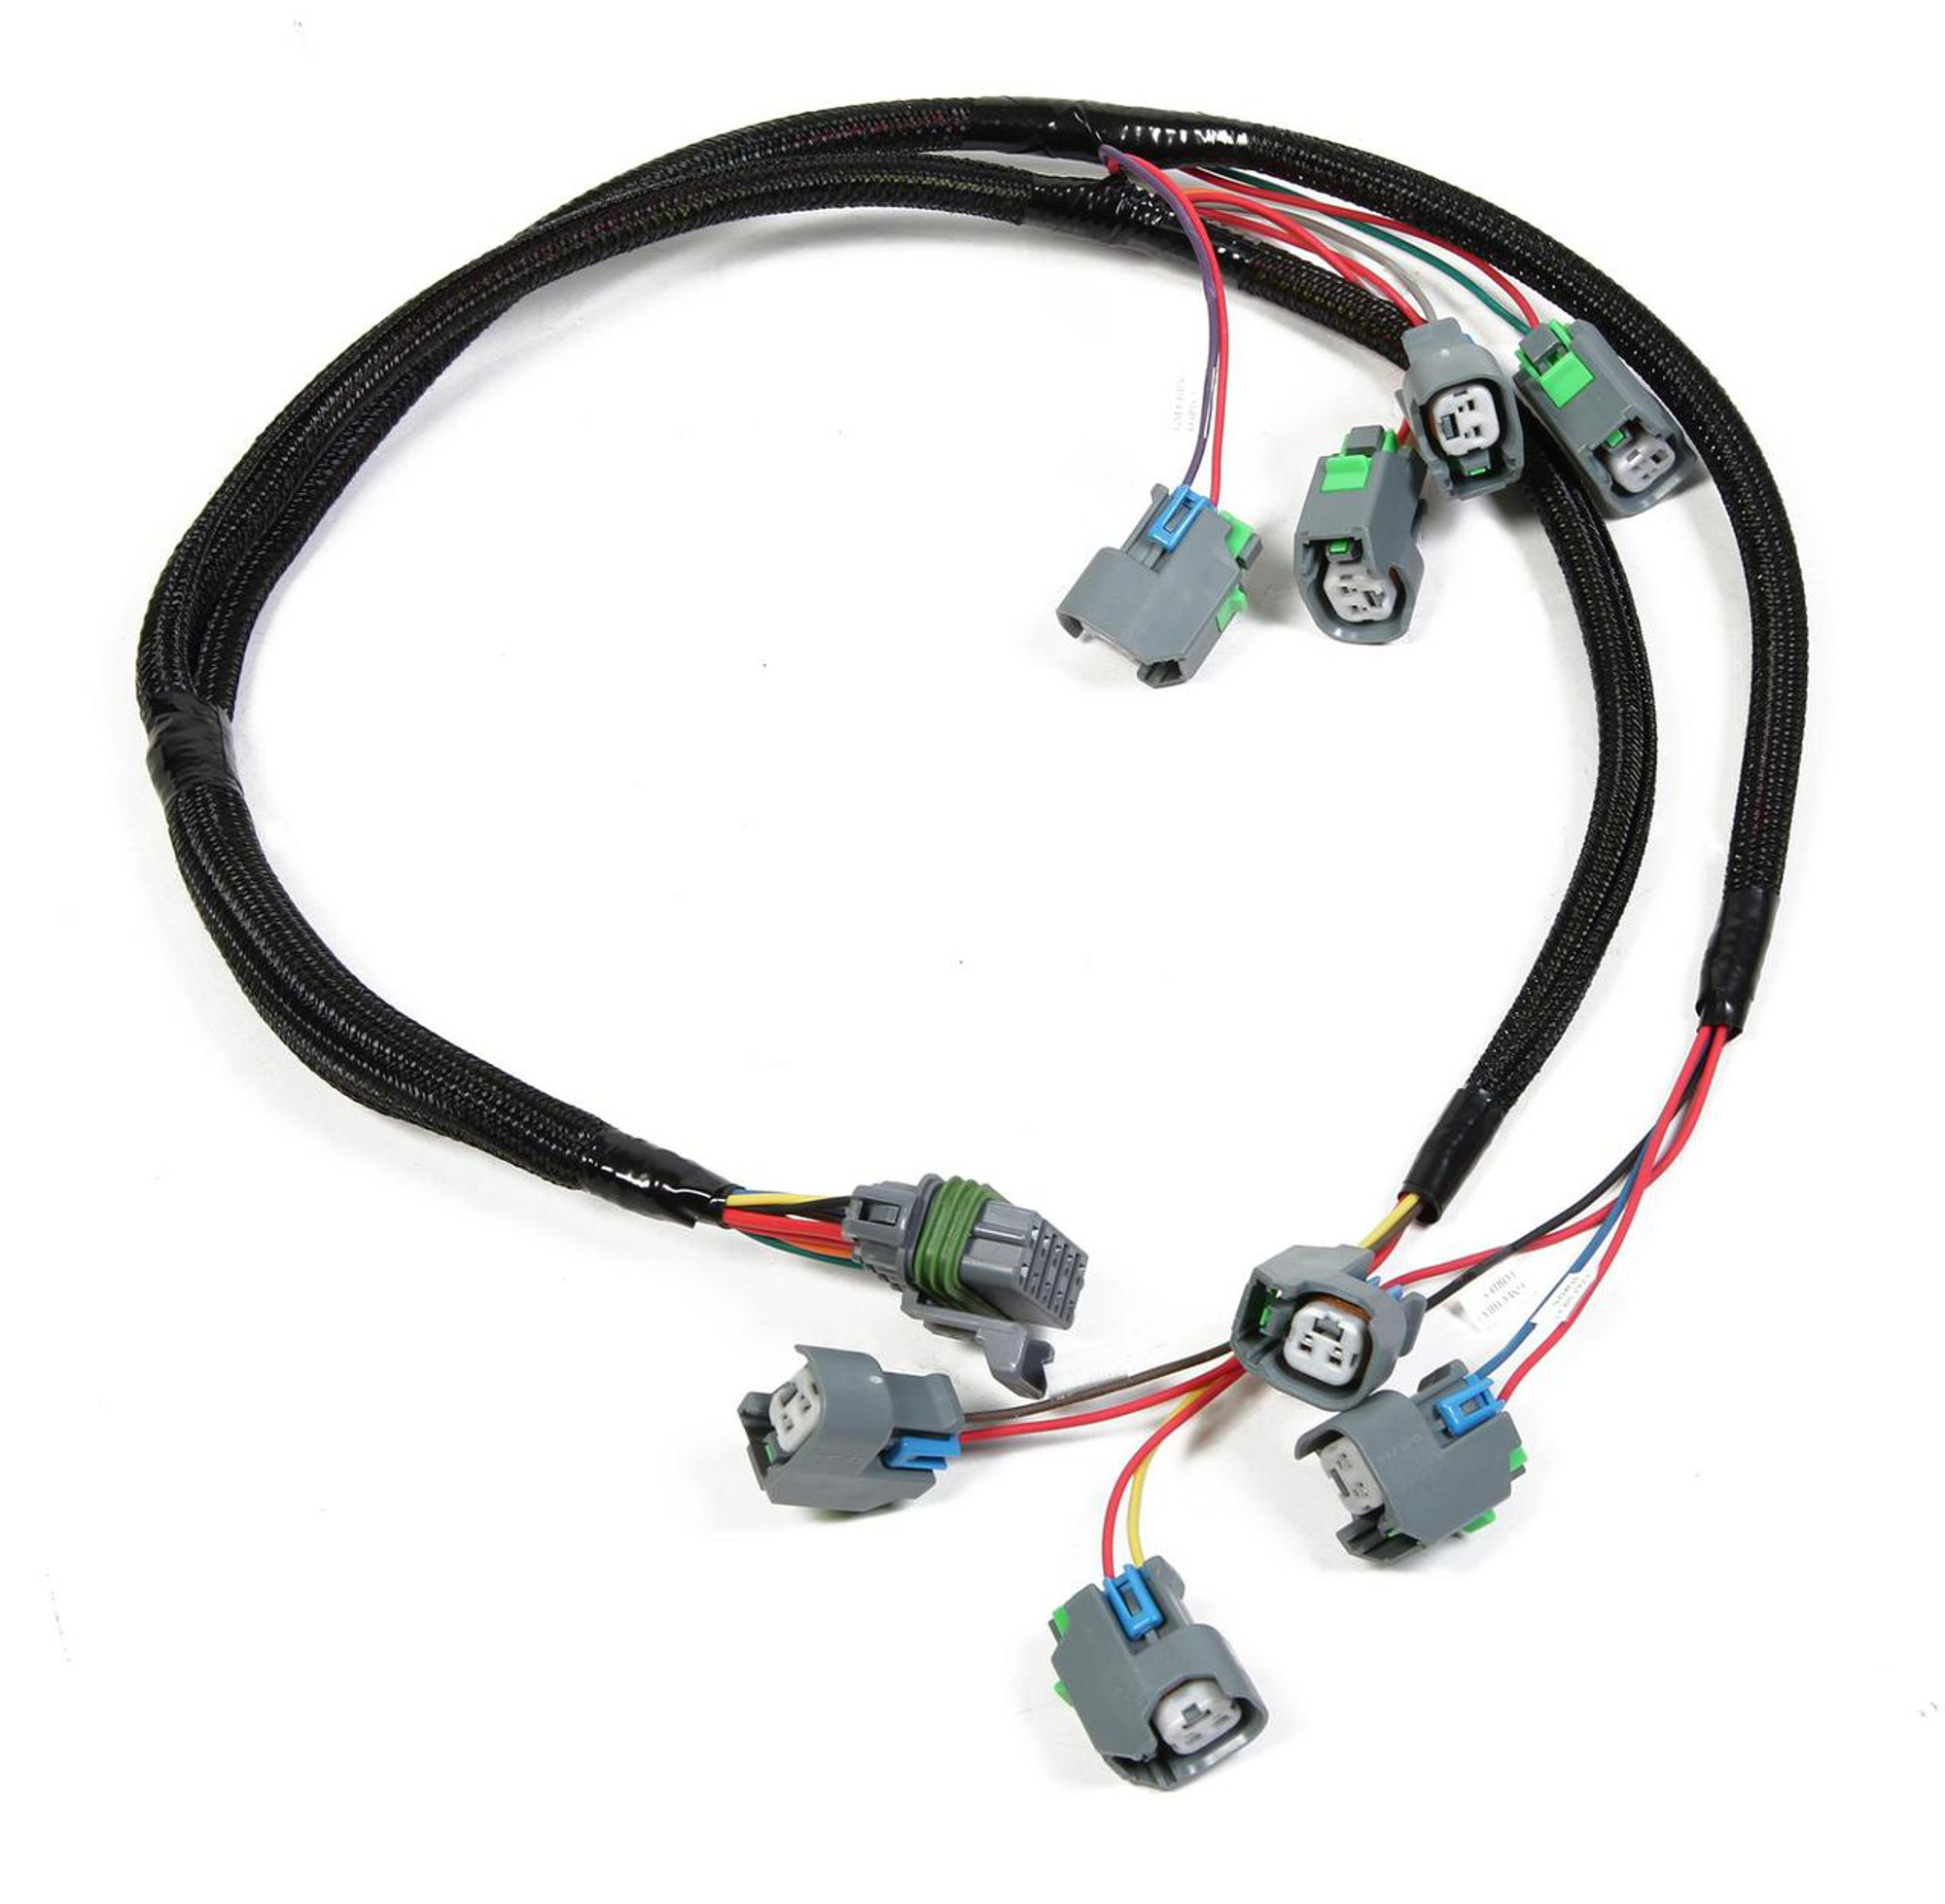 small resolution of holley fuel injection wiring harness for lsx engines part hly 558 fuel injector wiring harness ford fuel injector wiring harness